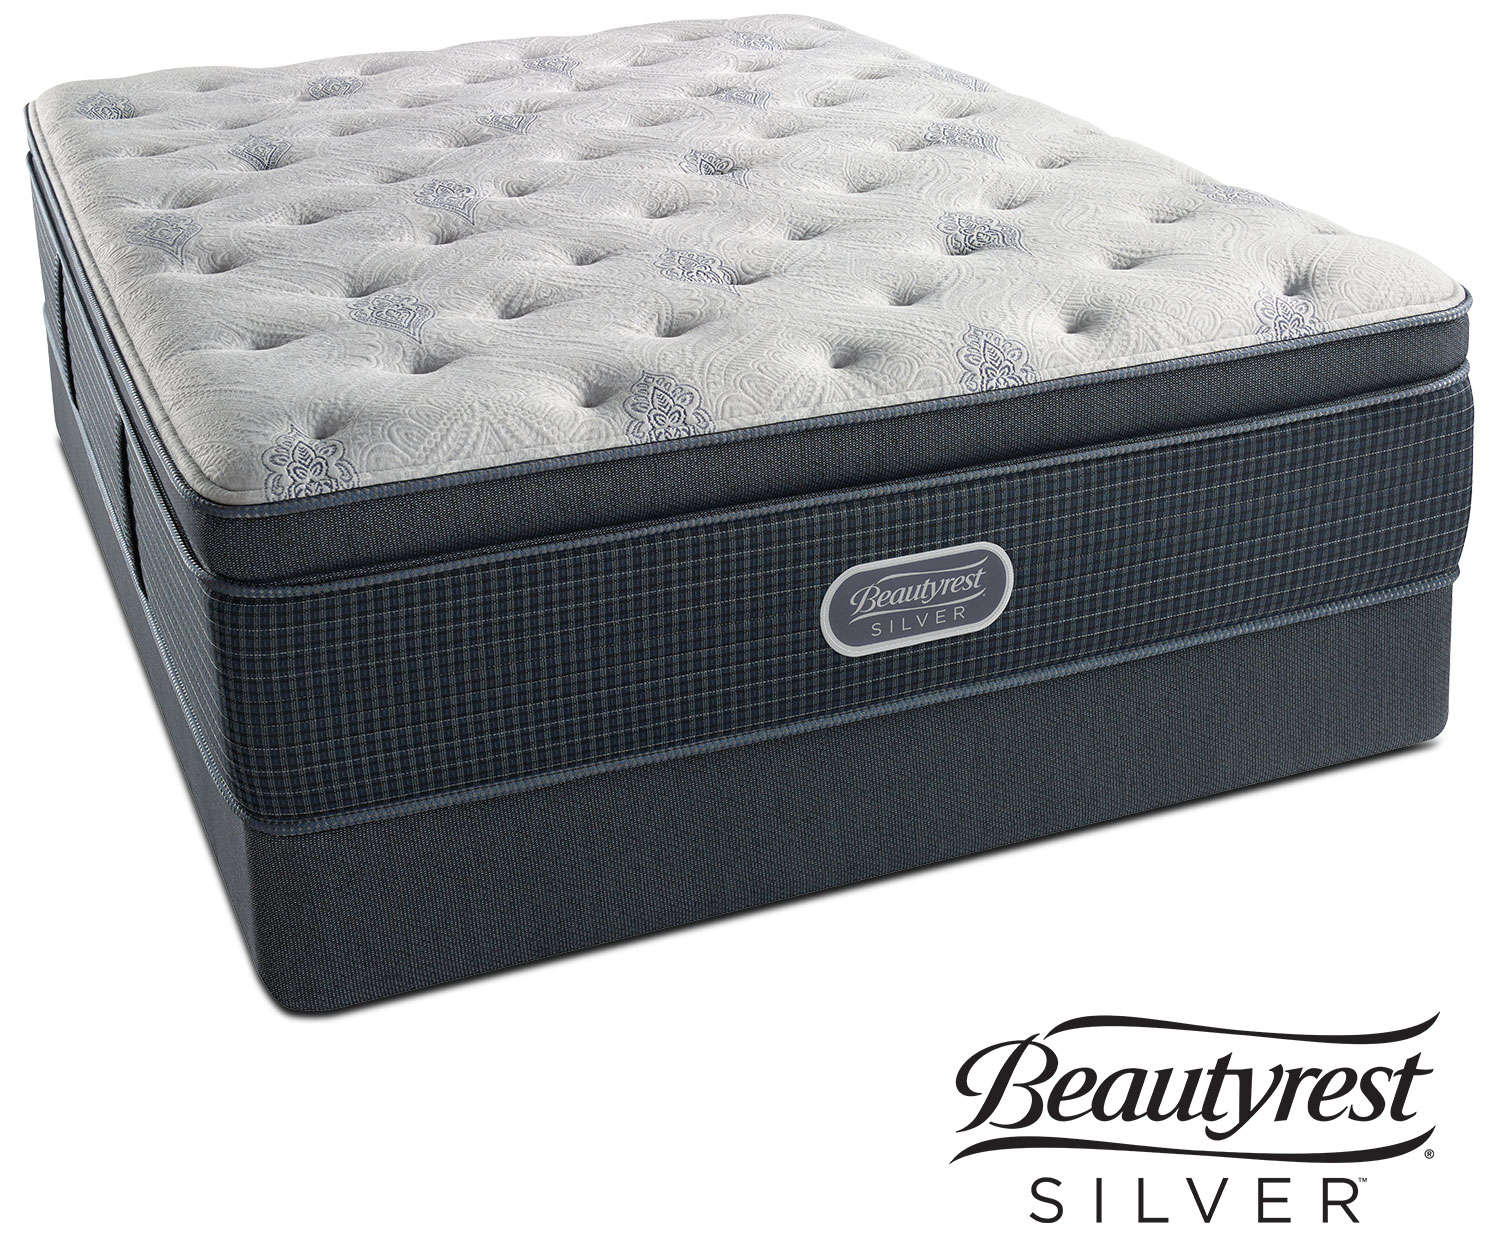 Crystal Ridge Luxury Firm Pillowtop Queen Mattress and Foundation Set